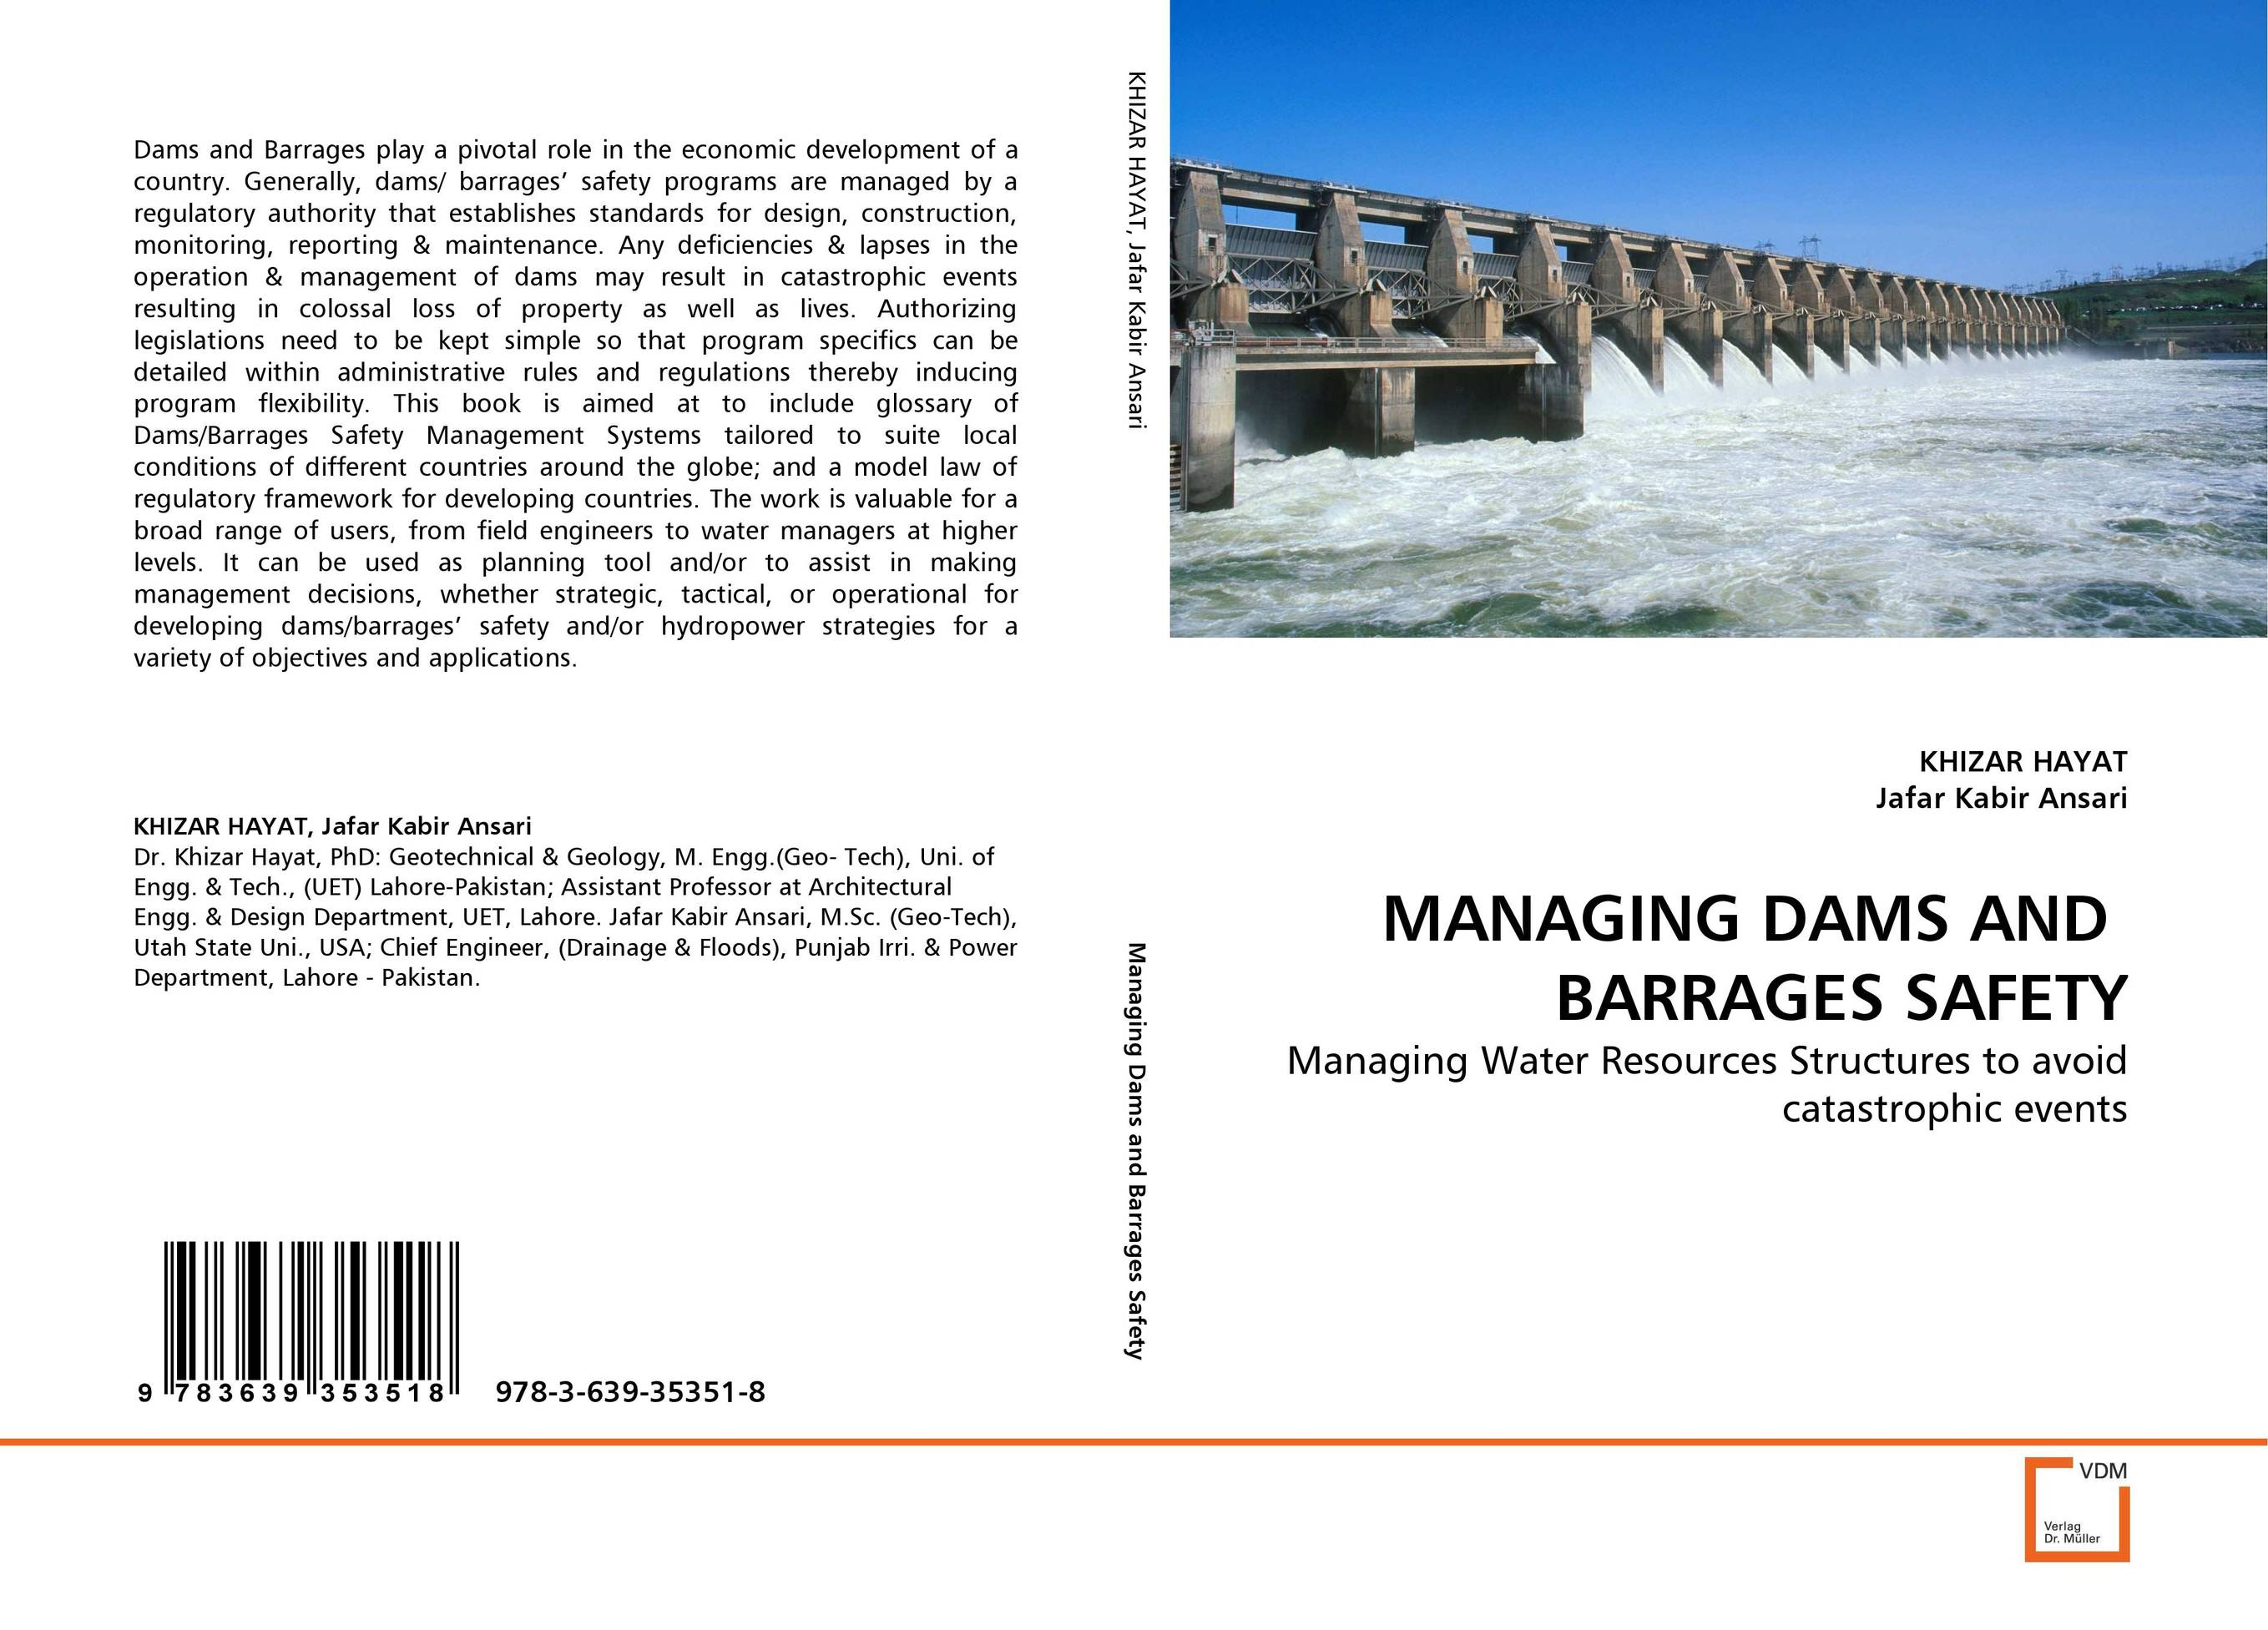 MANAGING DAMS AND BARRAGES SAFETY a decision support tool for library book inventory management